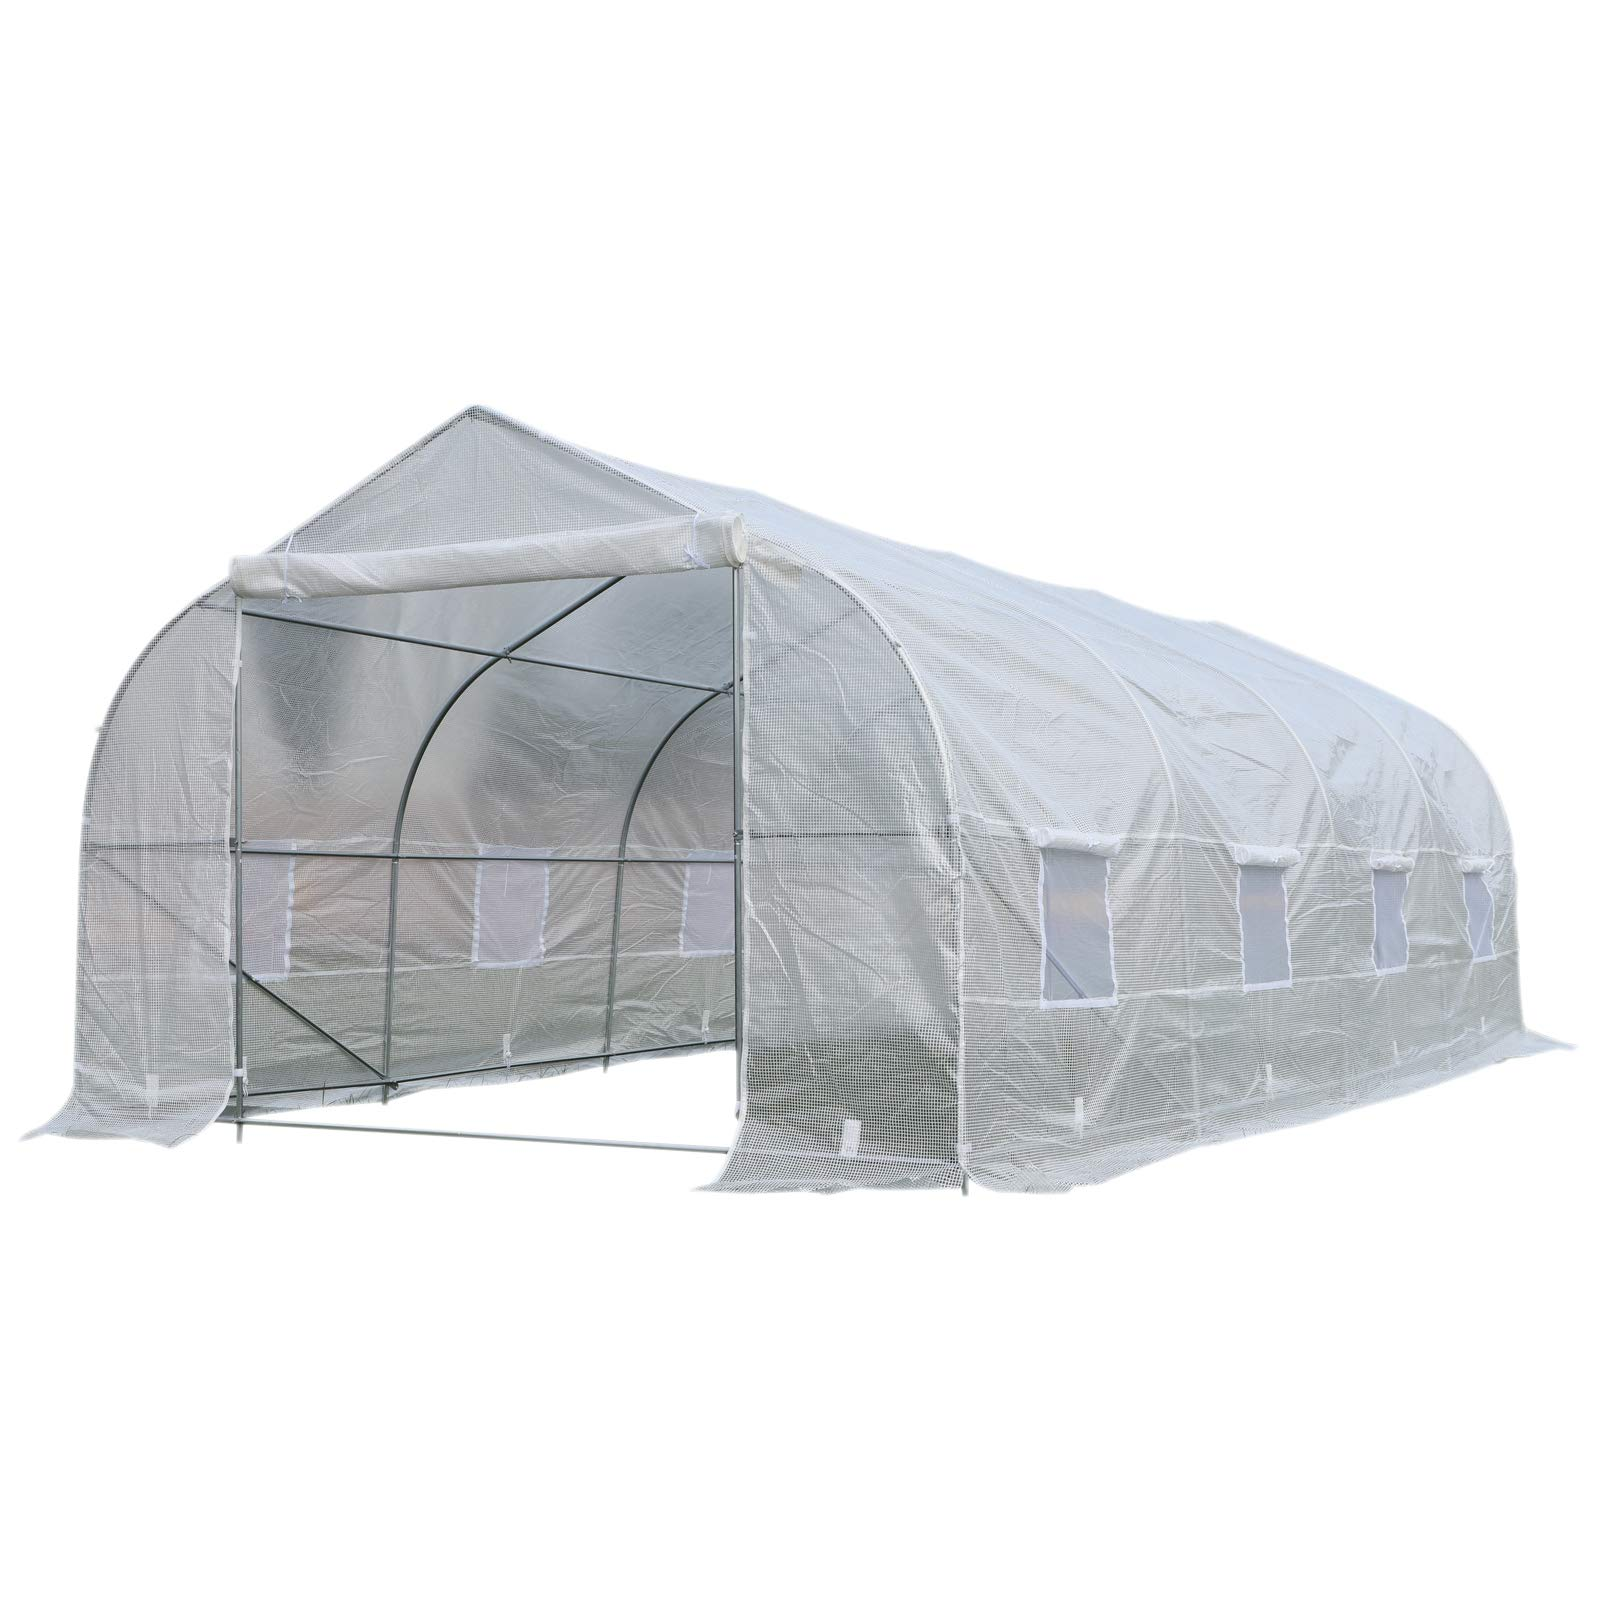 Outsunny 19.5' Portable Walk-in Garden Greenhouse - White by Outsunny